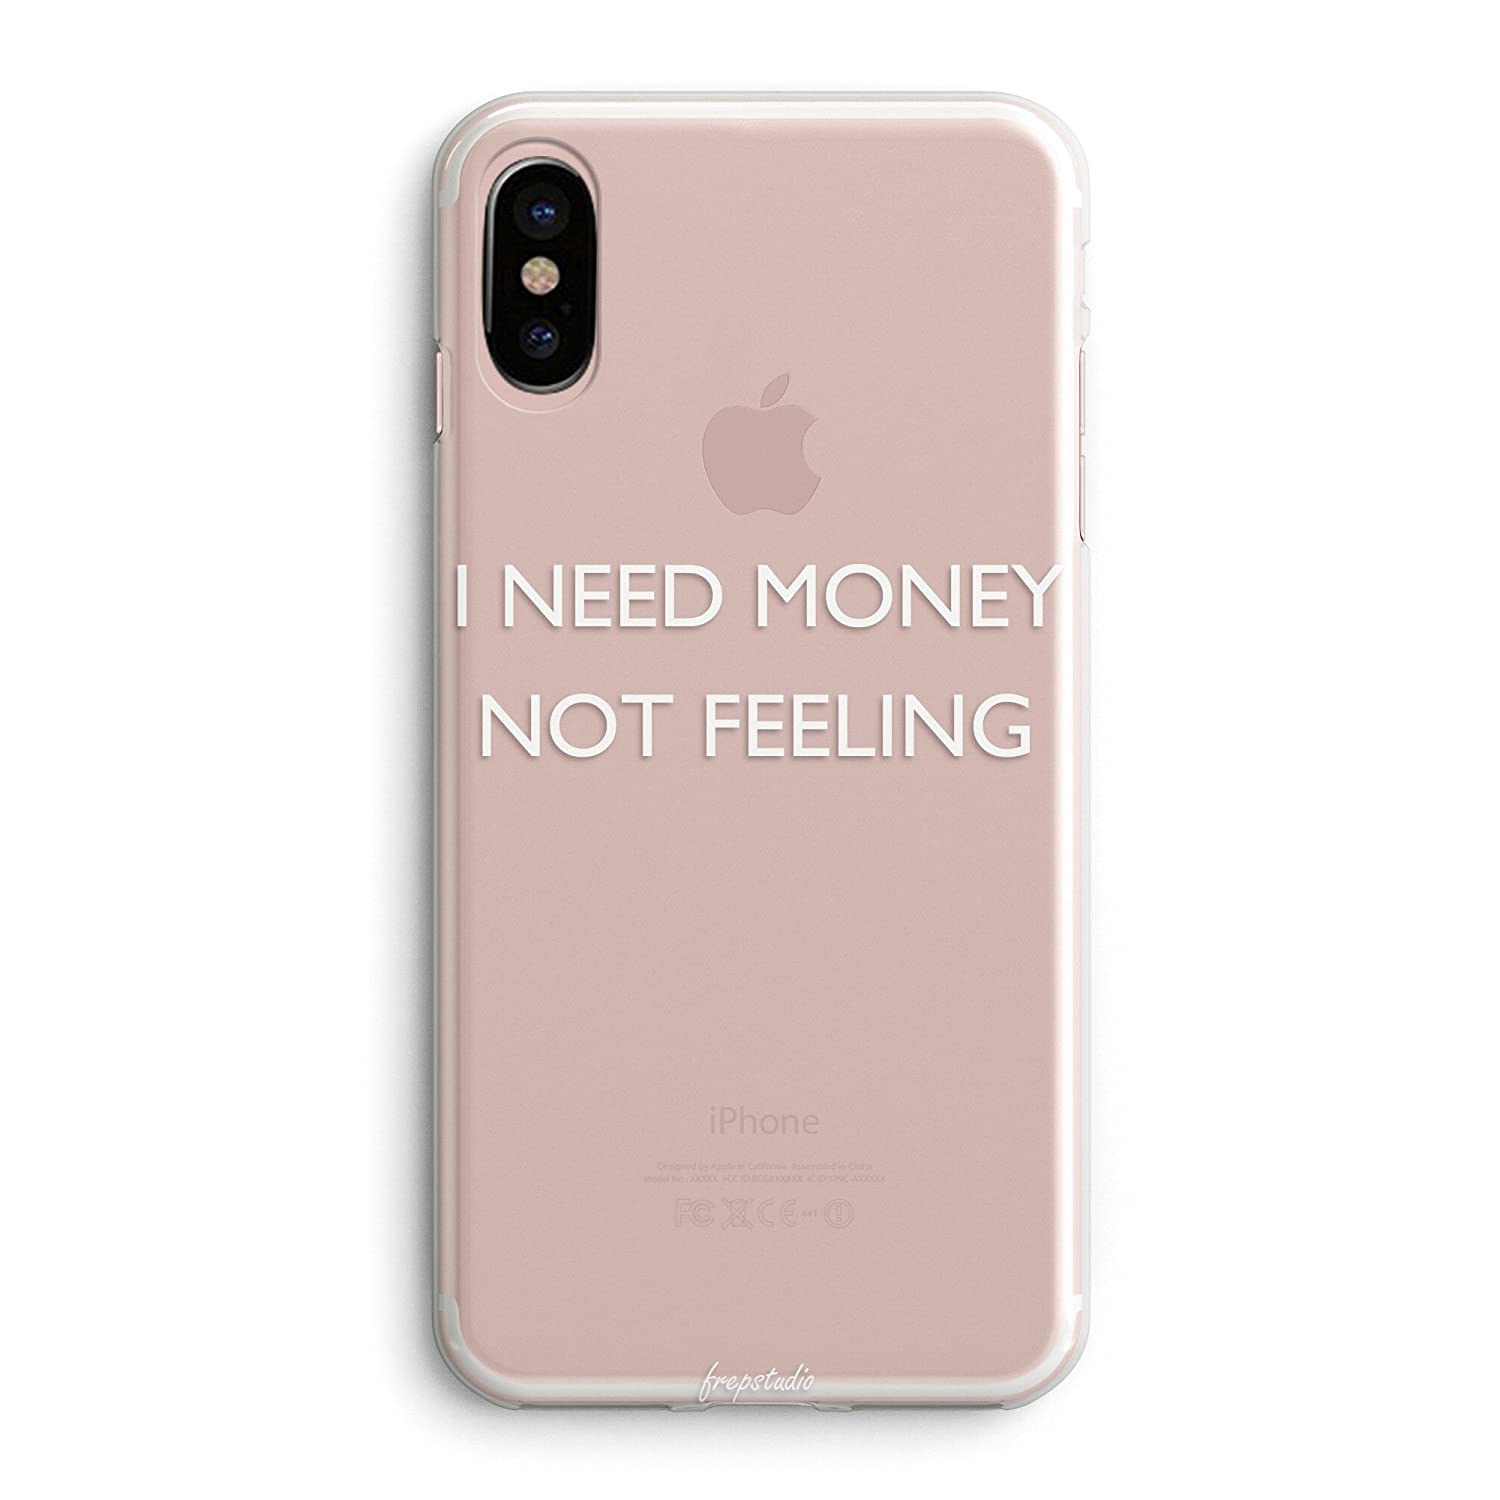 Frepstudio compatible quotes funny sassy quote sayings slogans cool rich case replacement for iphone x i need money not feeling clear rubber case